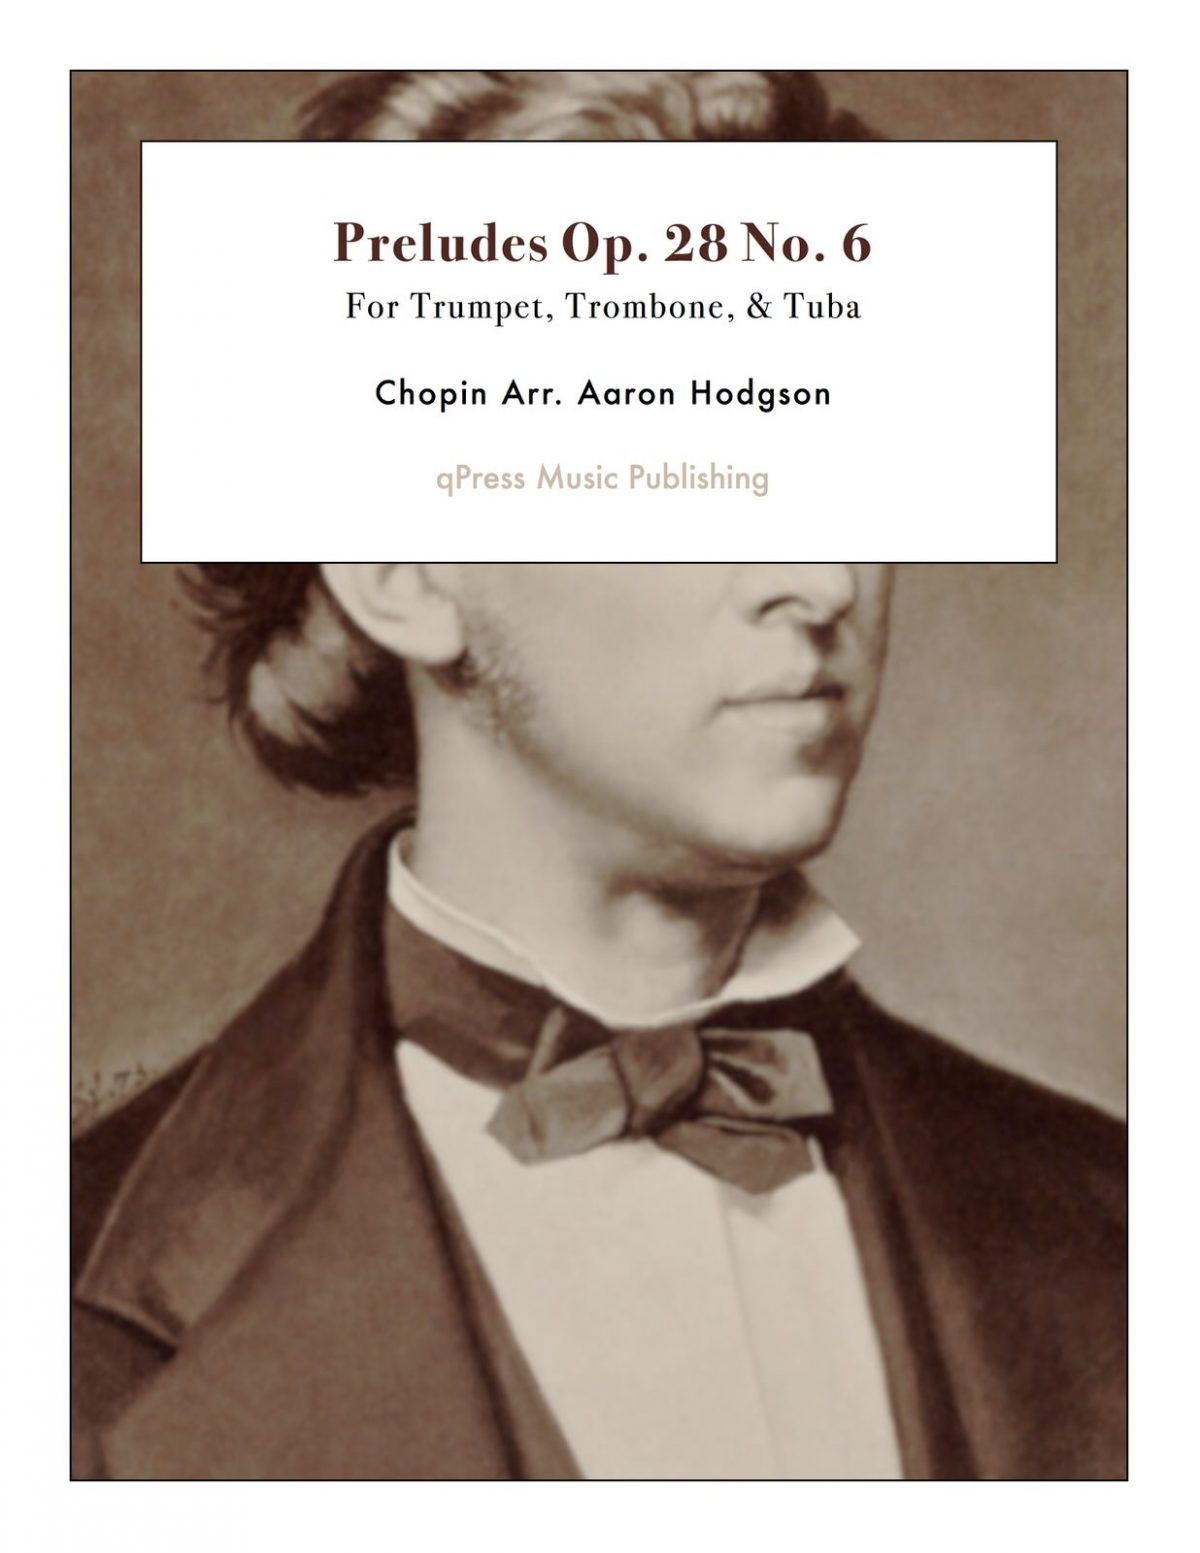 Chopin, Preludes Op.28 No.6 (Score and Parts)-p1